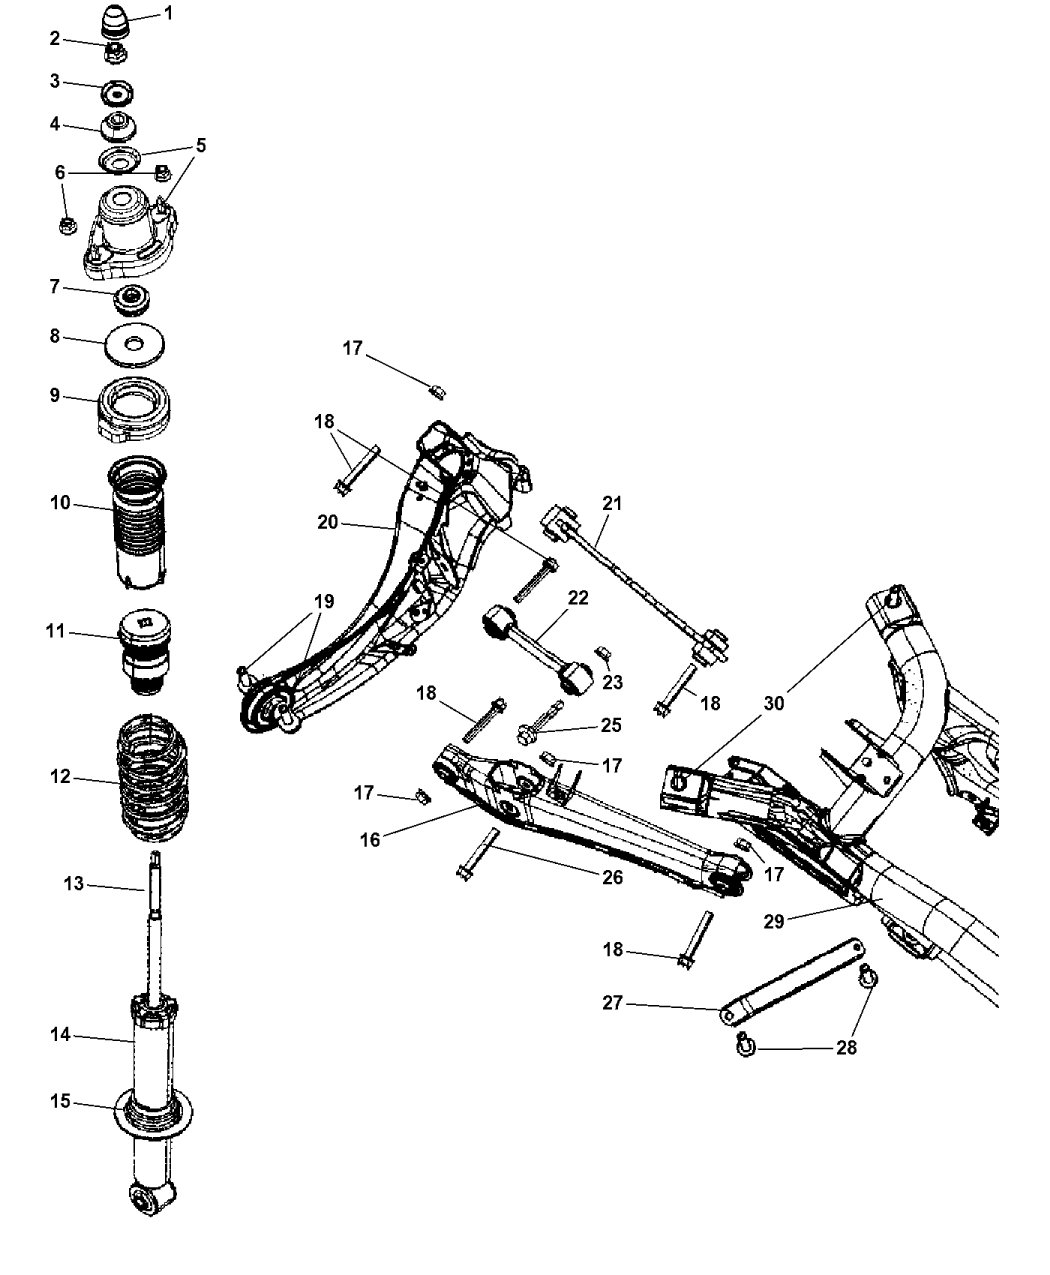 jeep suspension schematic m38 army jeep wiring schematic 68058866aa - genuine jeep *absorber-suspension